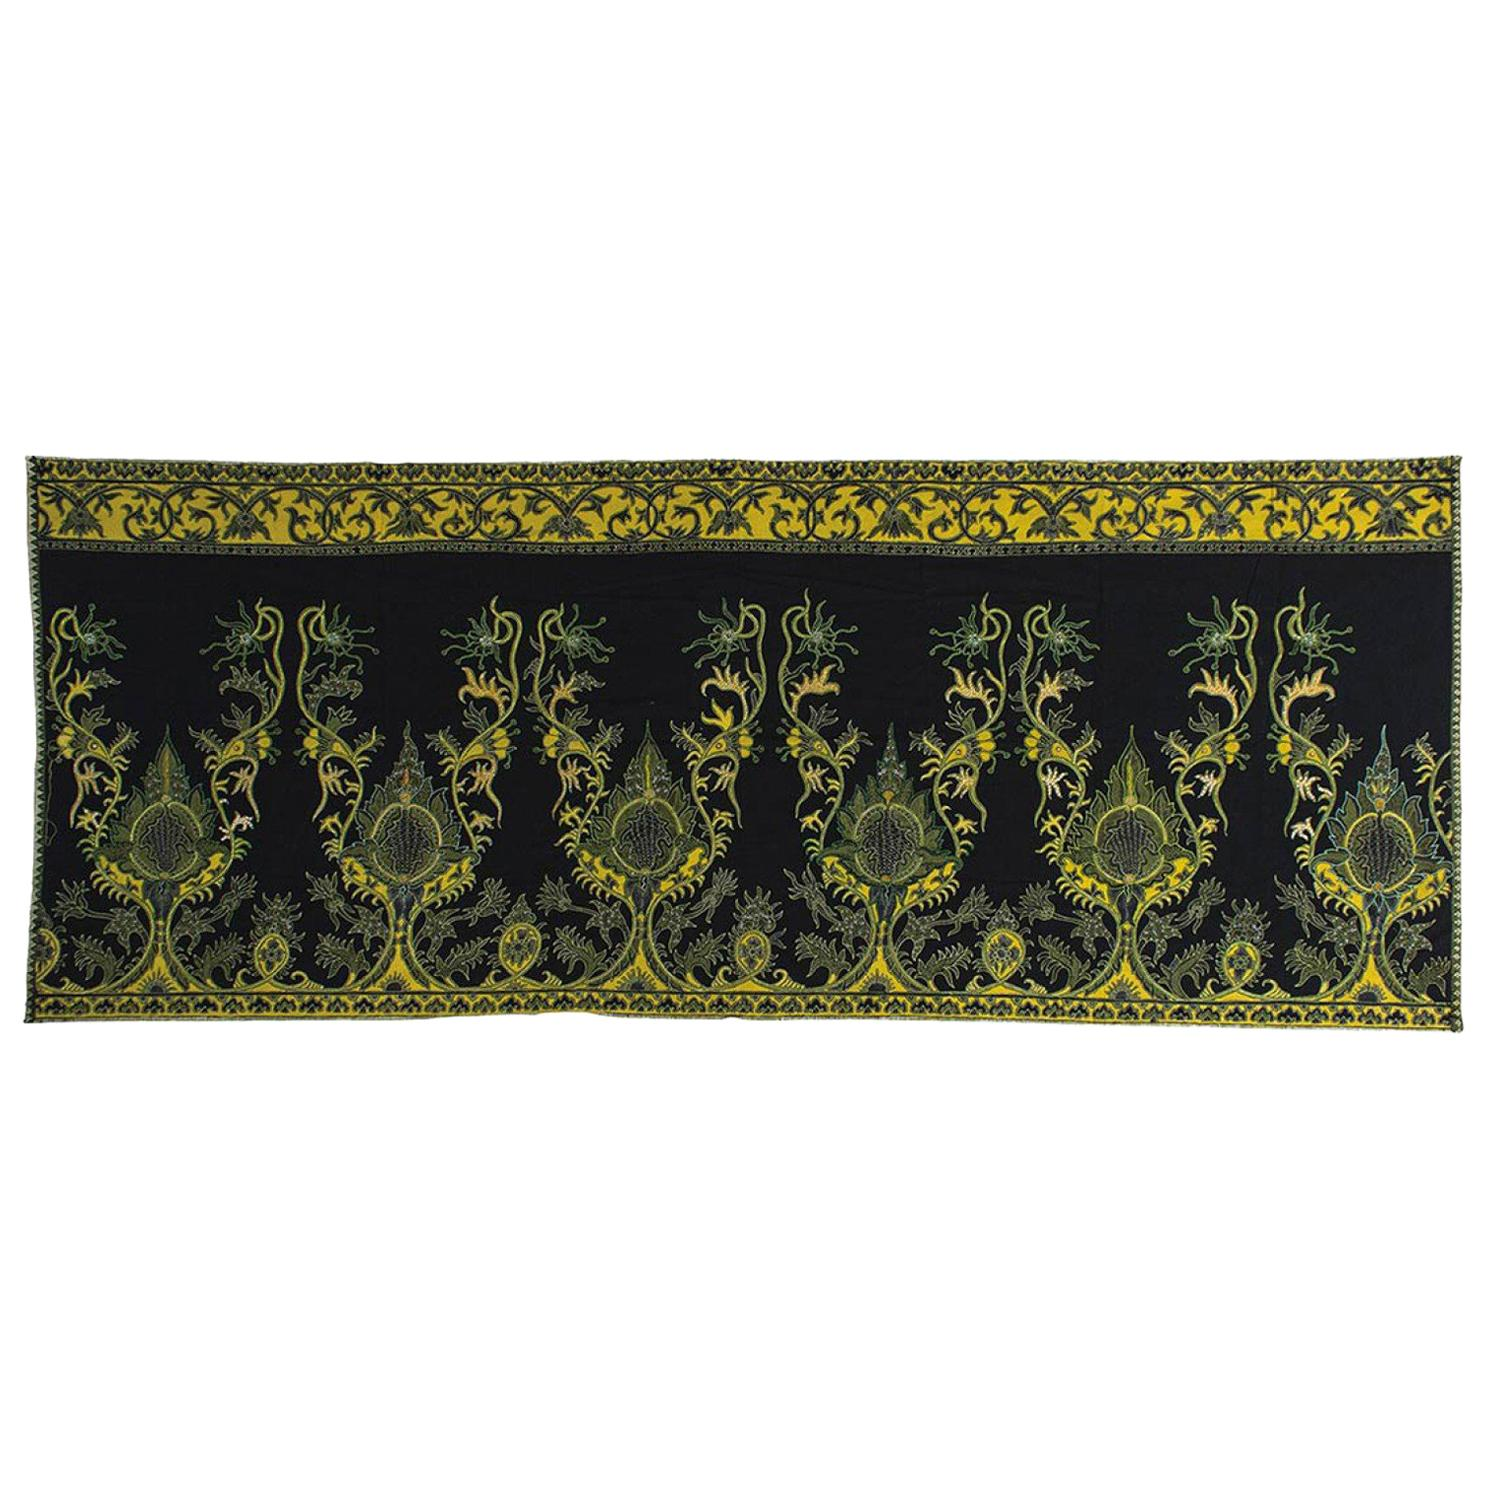 Ceremonial Cloth Tapis Of Lampung For Sale At 1stdibs